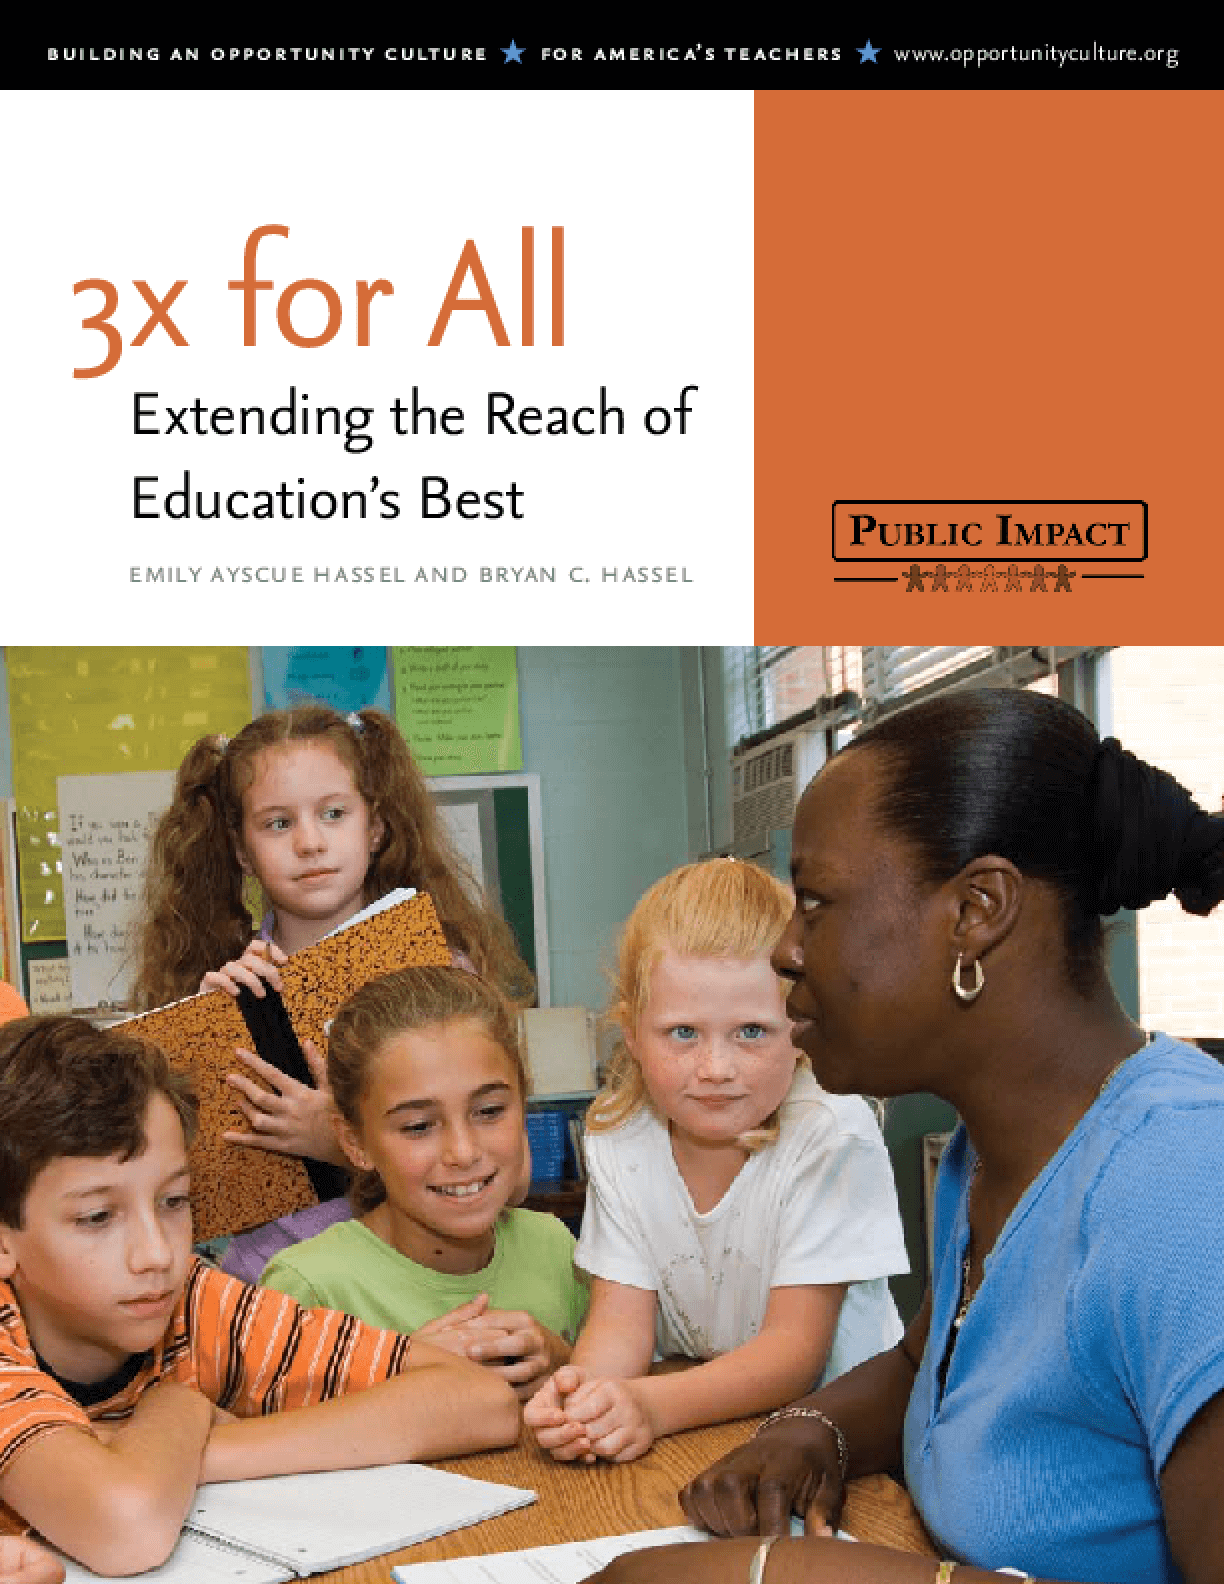 3X for All: Extending the Reach of Education's Best